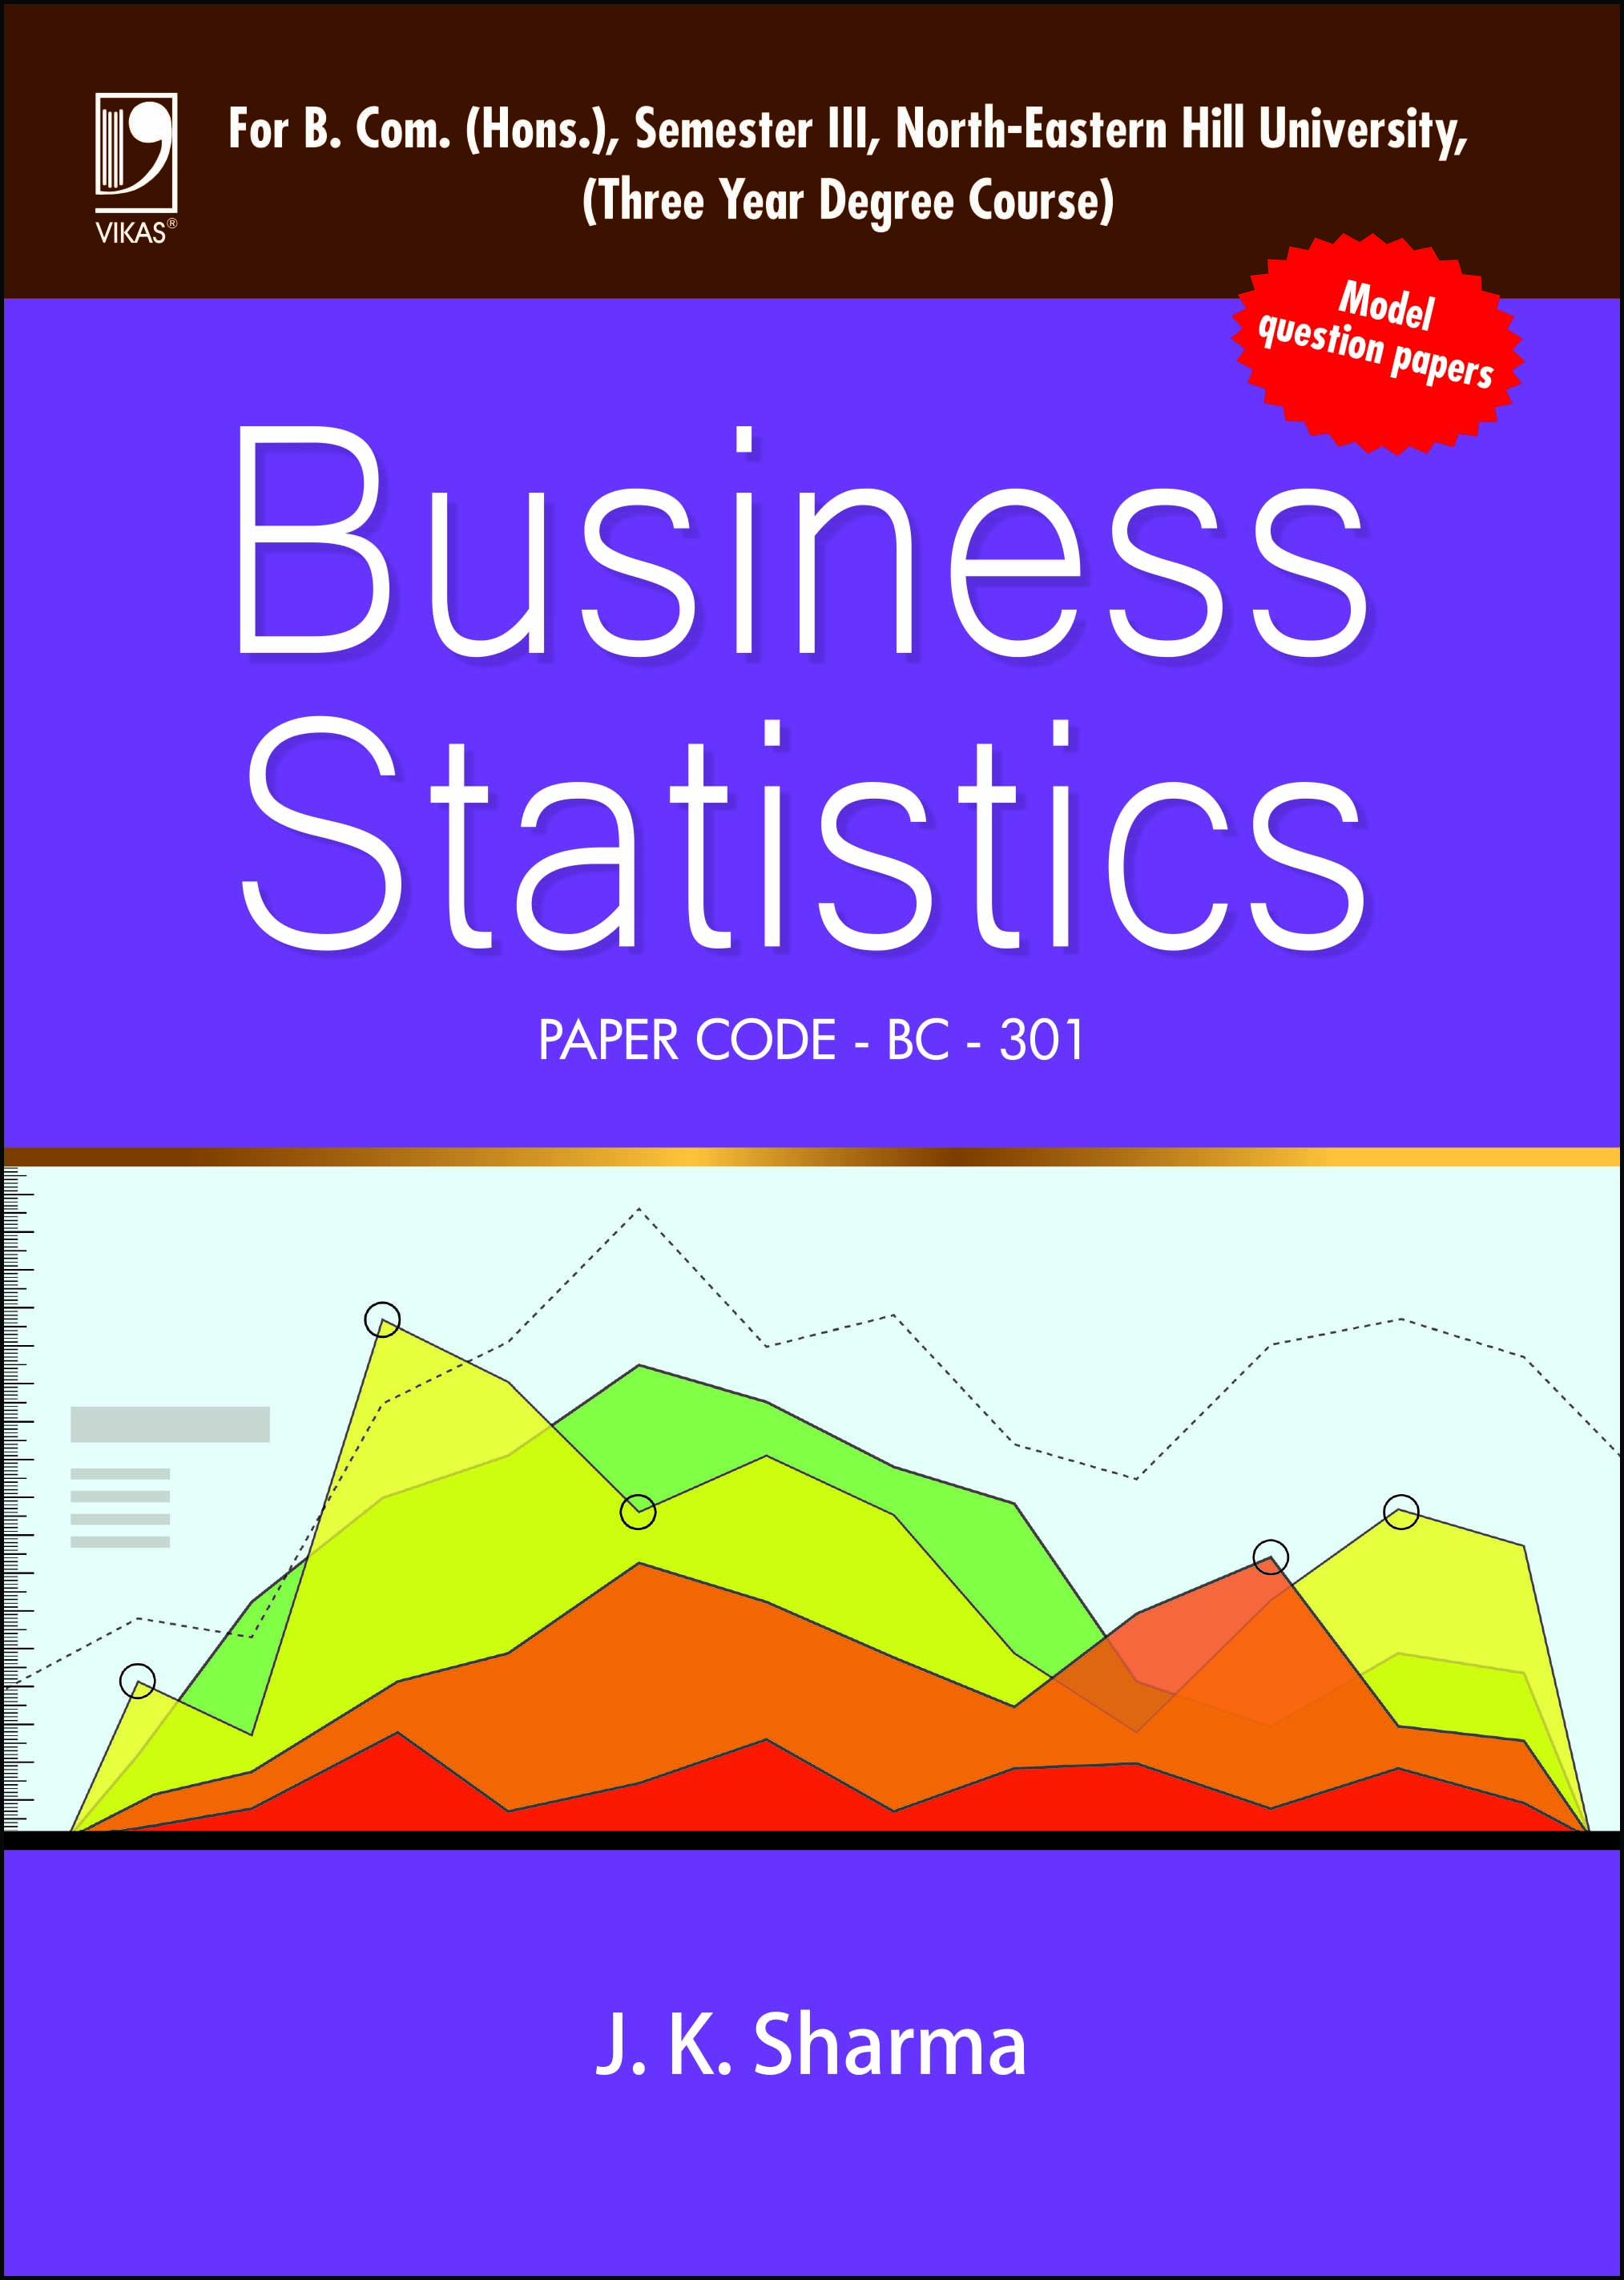 BUSINESS STATISTICS: (FOR NORTH-EASTERN HILL UNIVERSITY) by  J K Sharma